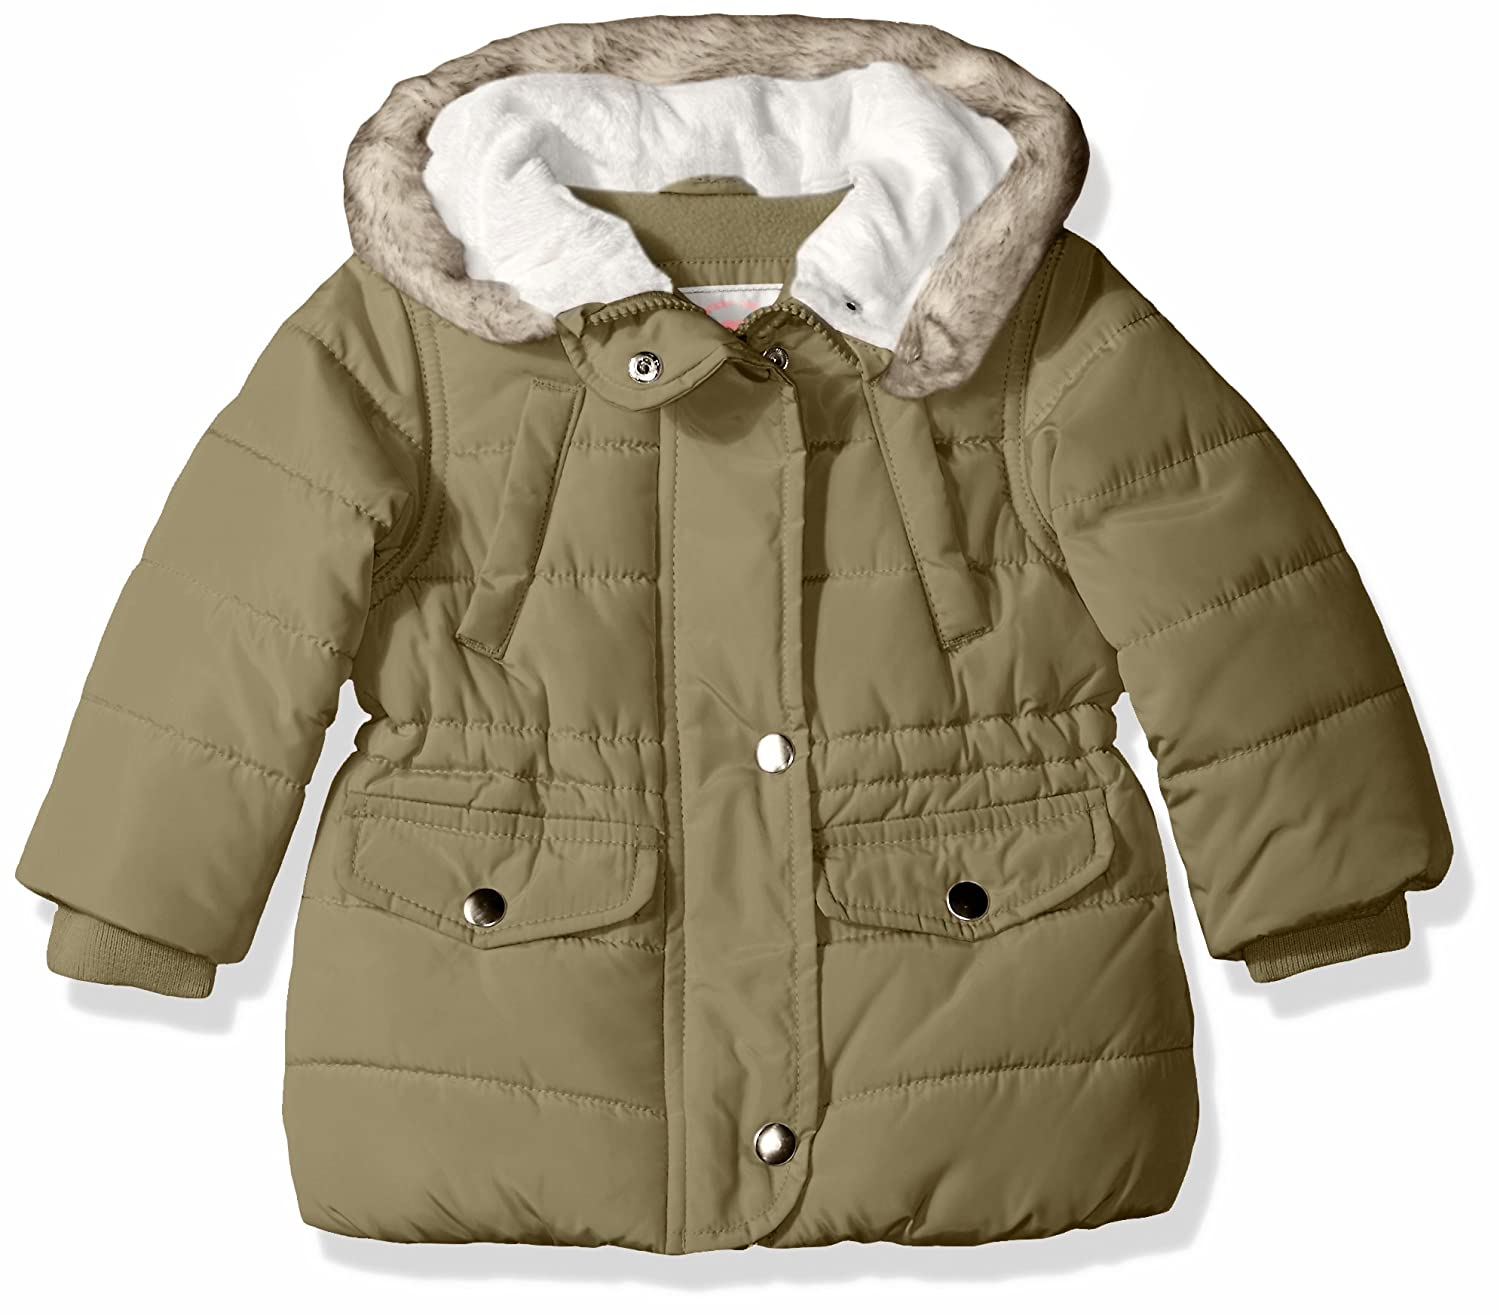 Carter's Baby Girls' Cozy Hood Puffy Jacket Coat Fort Green 24M Carter's C217562